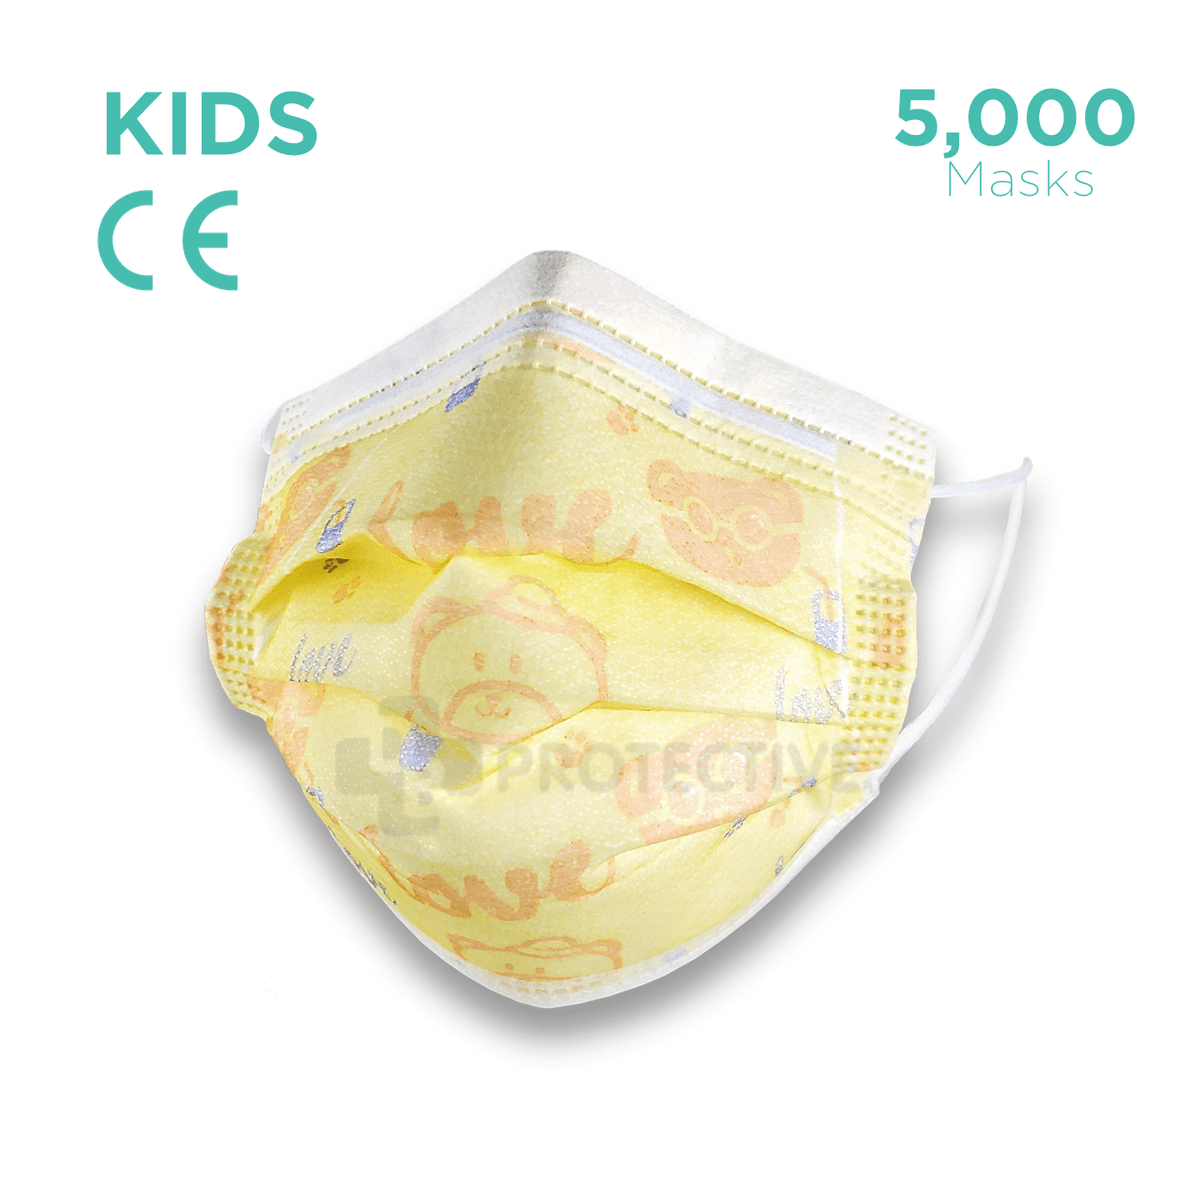 Kids 3 Ply Disposable face Mask - 5,000 Disposable Kids Face Masks